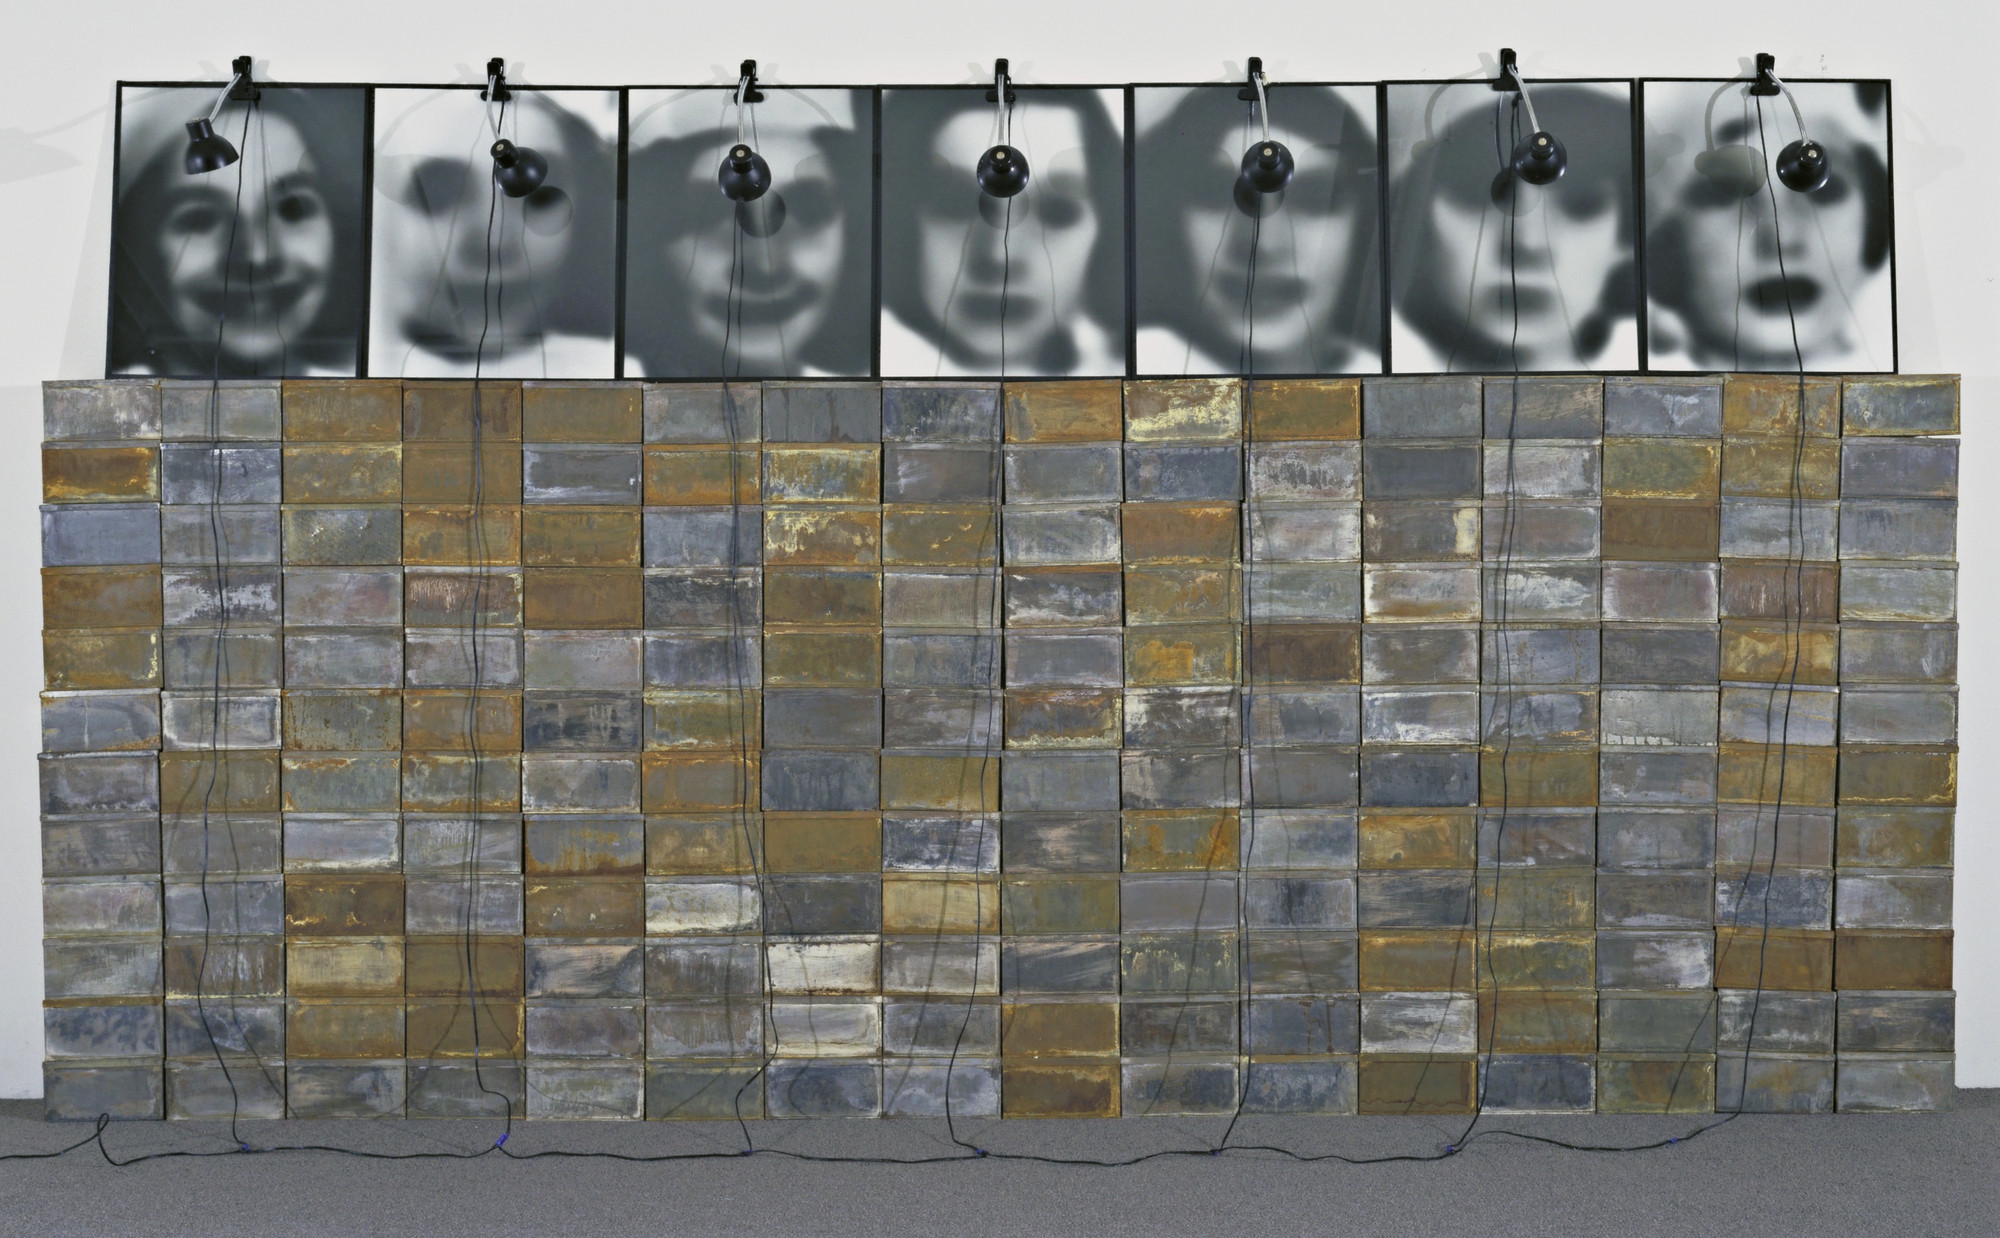 Christian Boltanski. The Storehouse. 1988